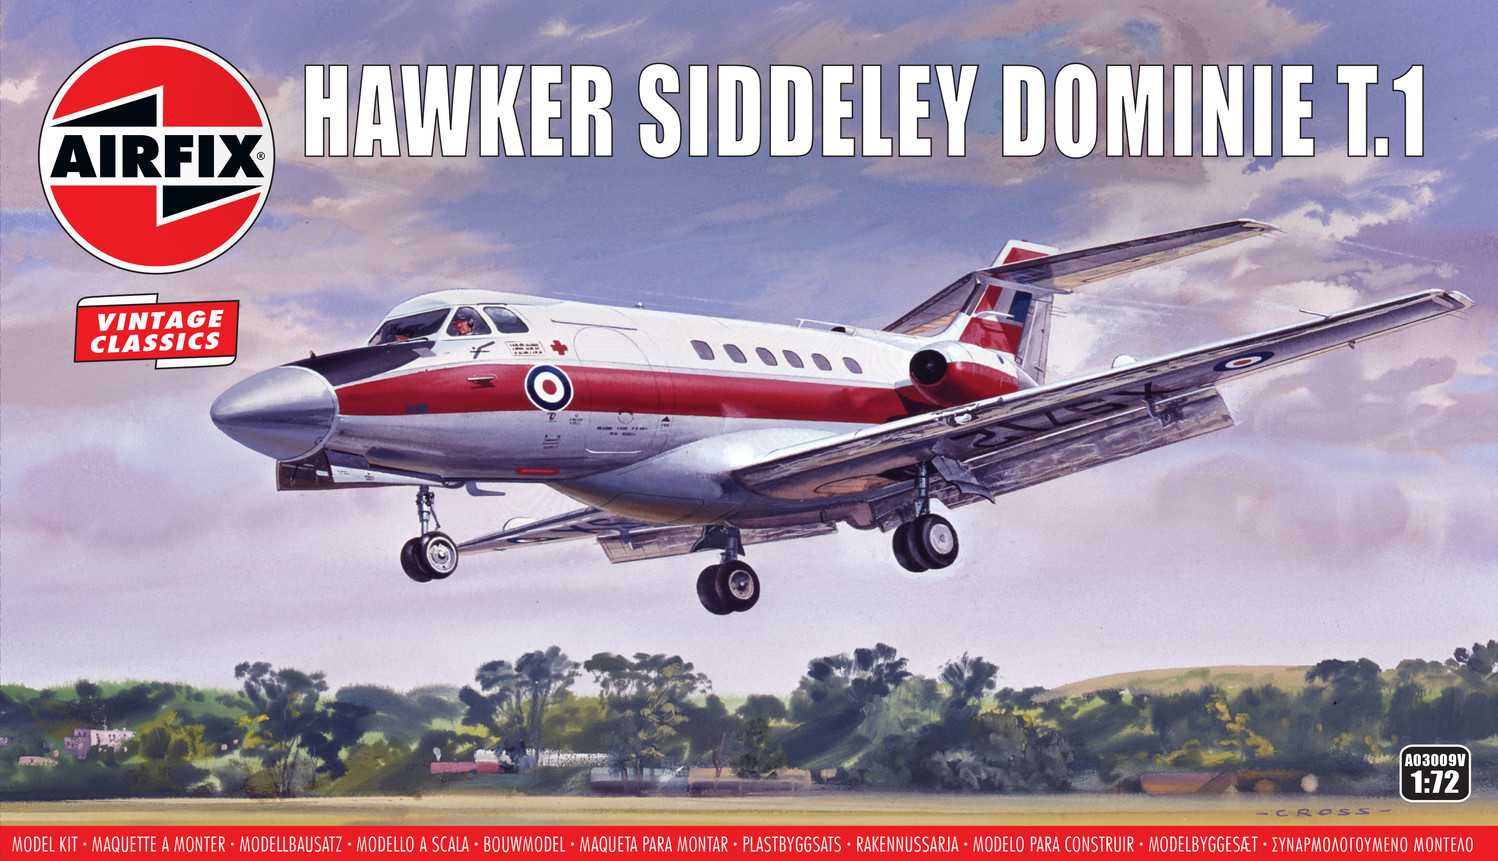 1:72 Hawker Siddeley Dominie T.1 (Classic Kit VINTAGE)